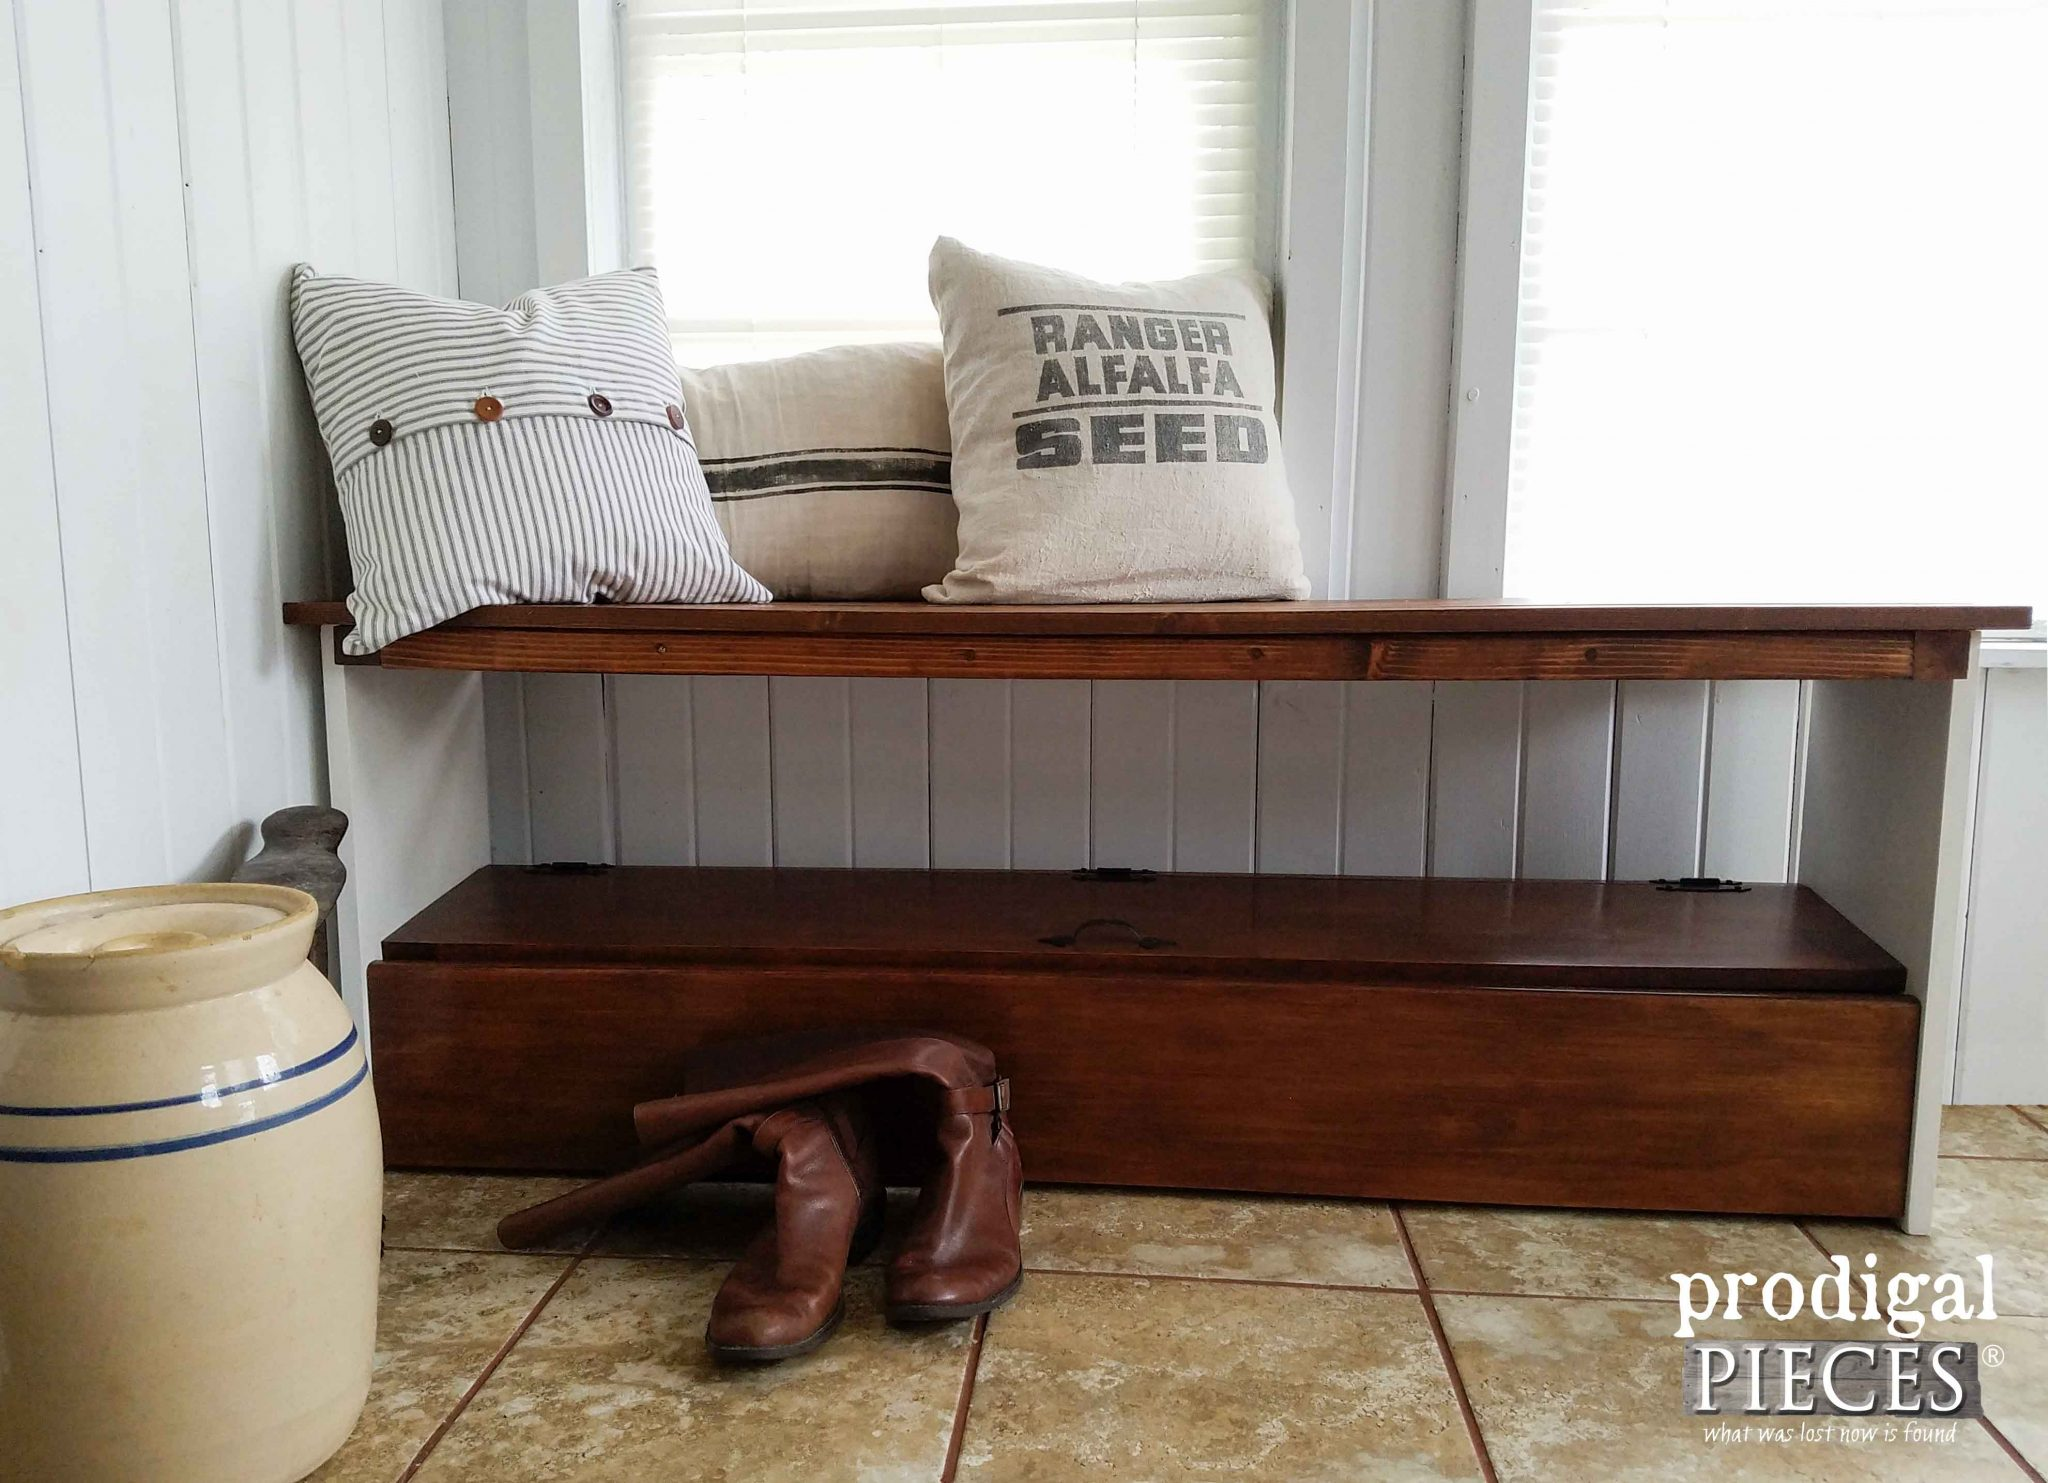 How to Create a Repurposed Bookcase Headboard Bench by Prodigal Pieces | prodigalpieces.com